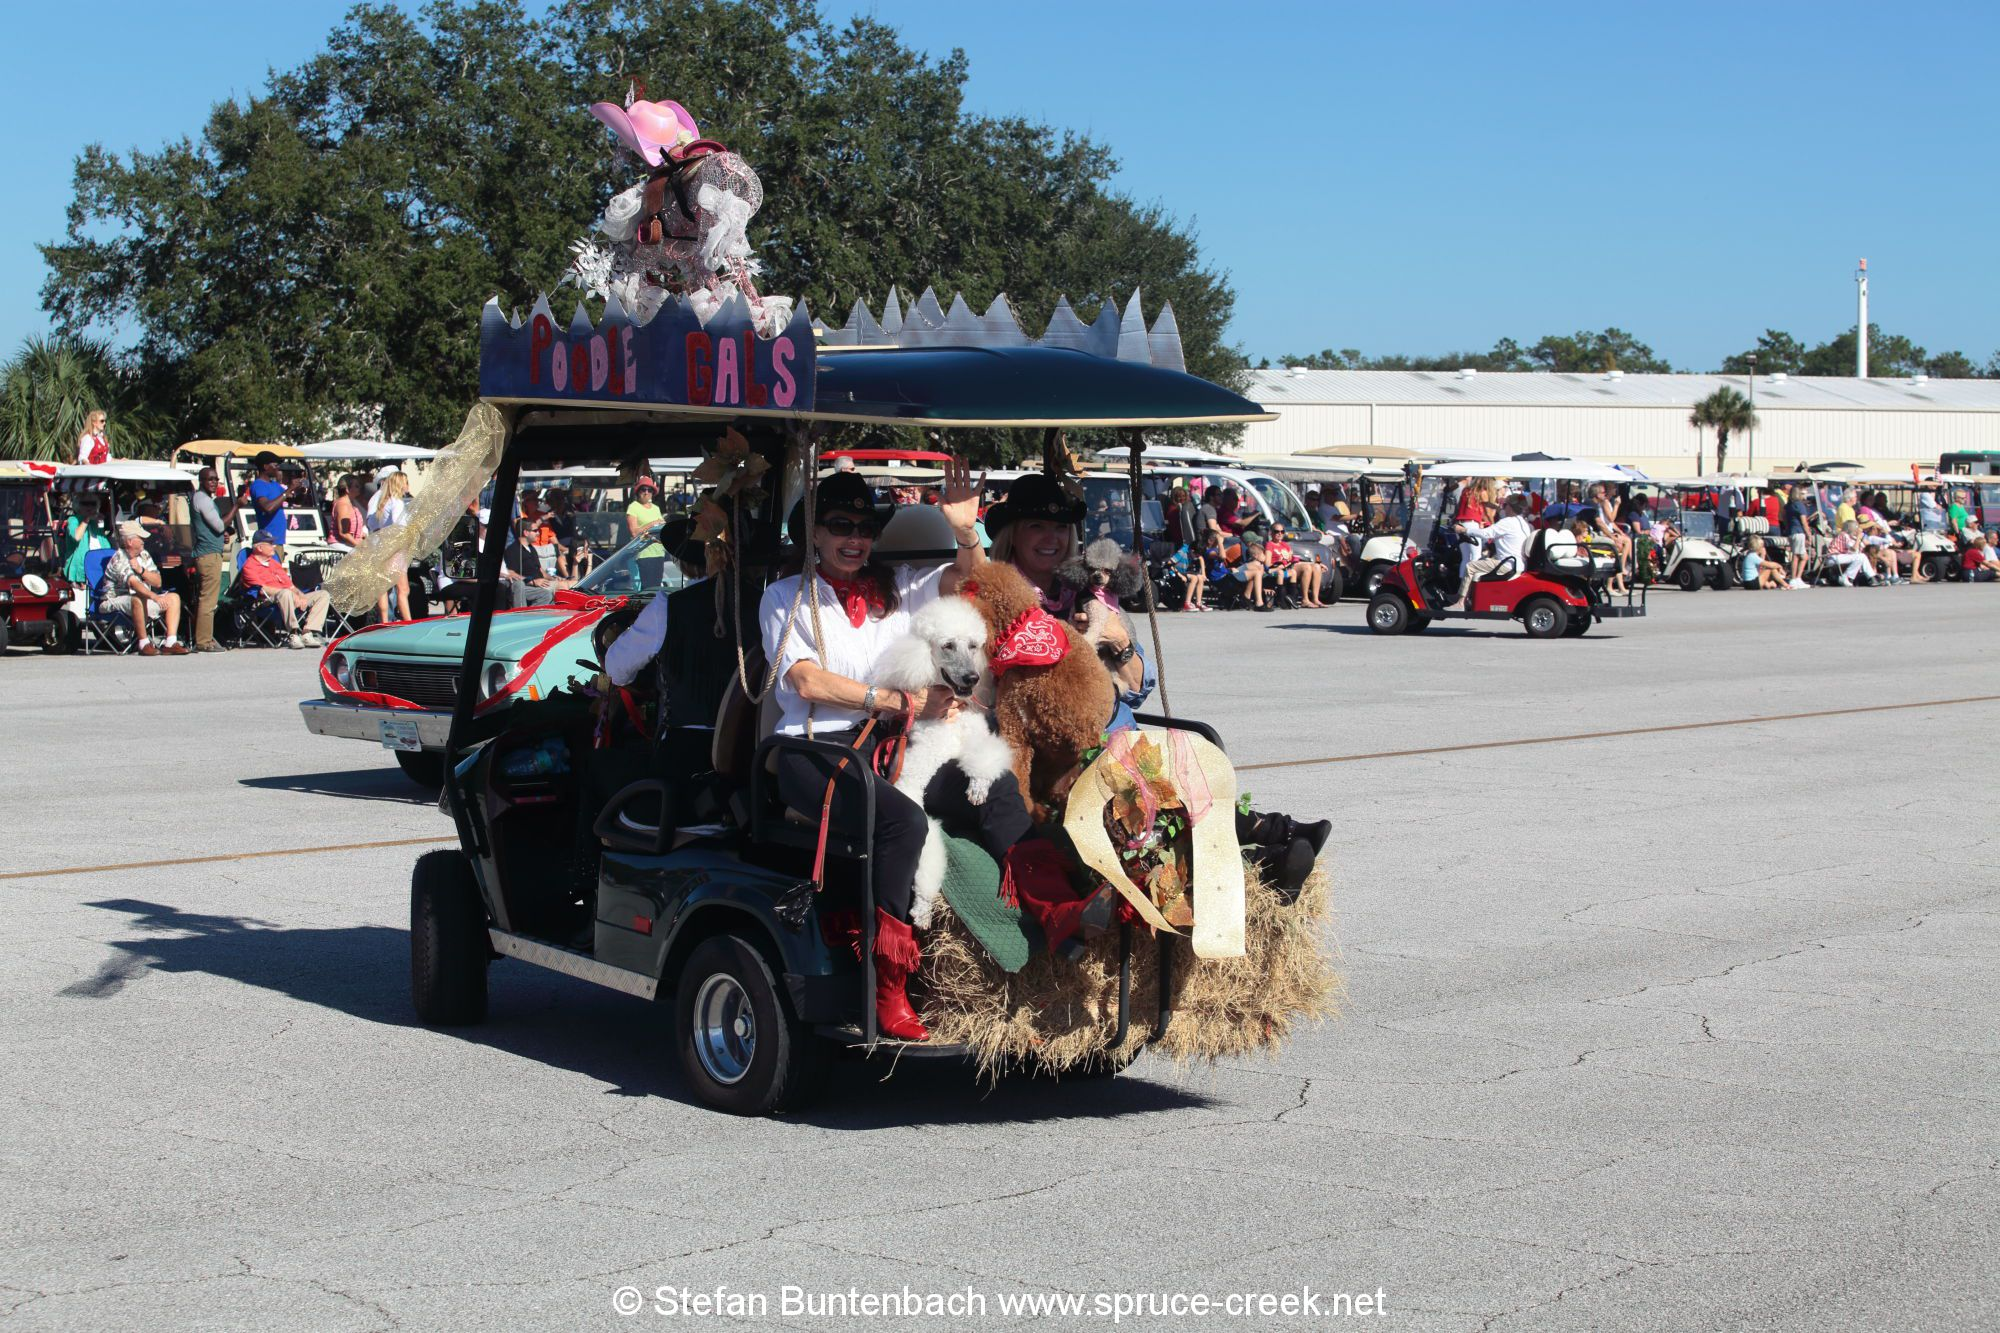 Spruce-Creek-Toyparade-2015- IMG_1531